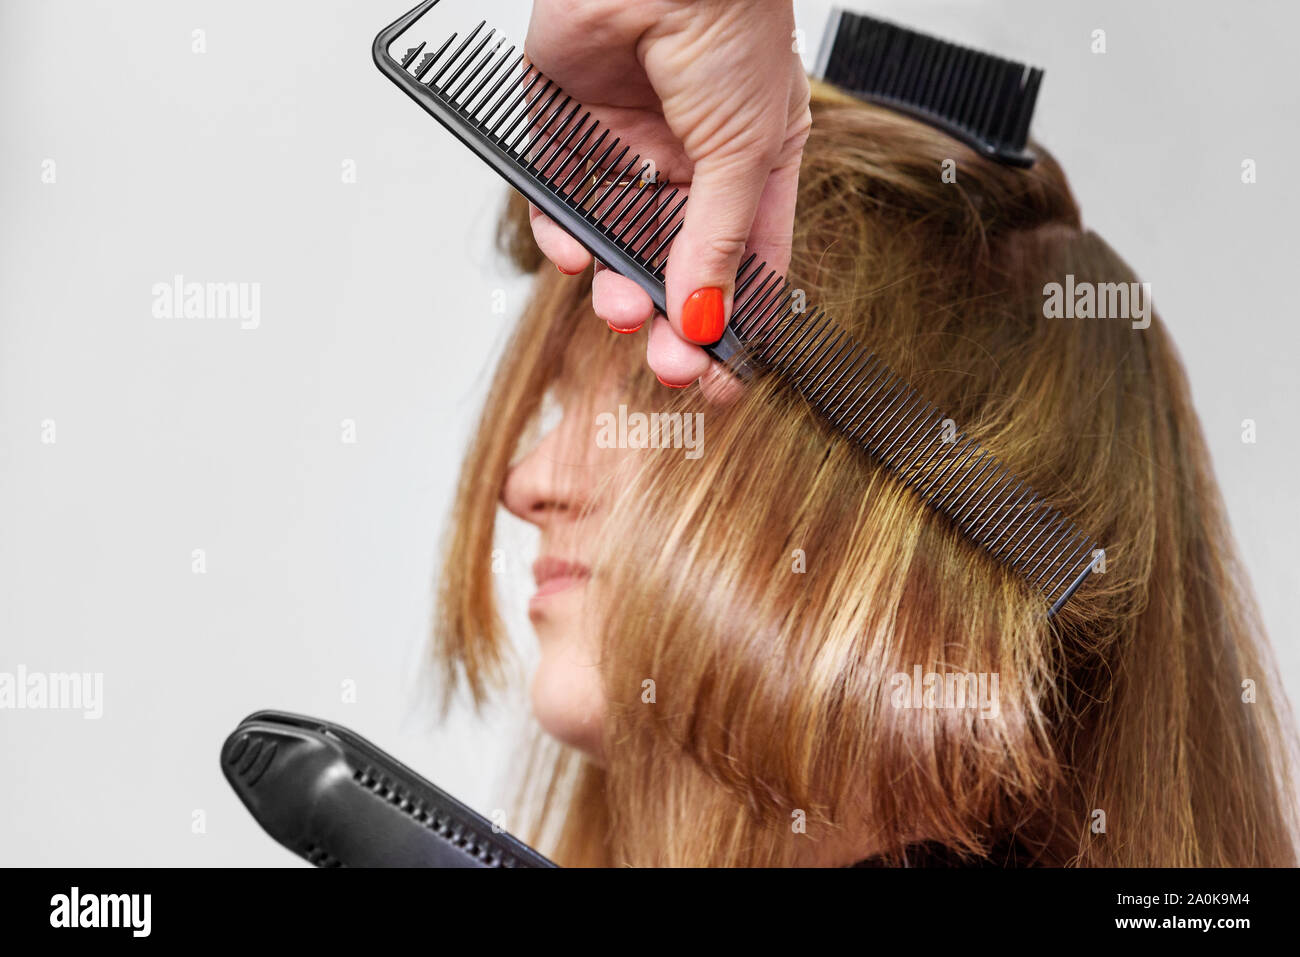 Professional hairdresser straightening long brown hair with hair irons in beauty salon. Close-up Stock Photo